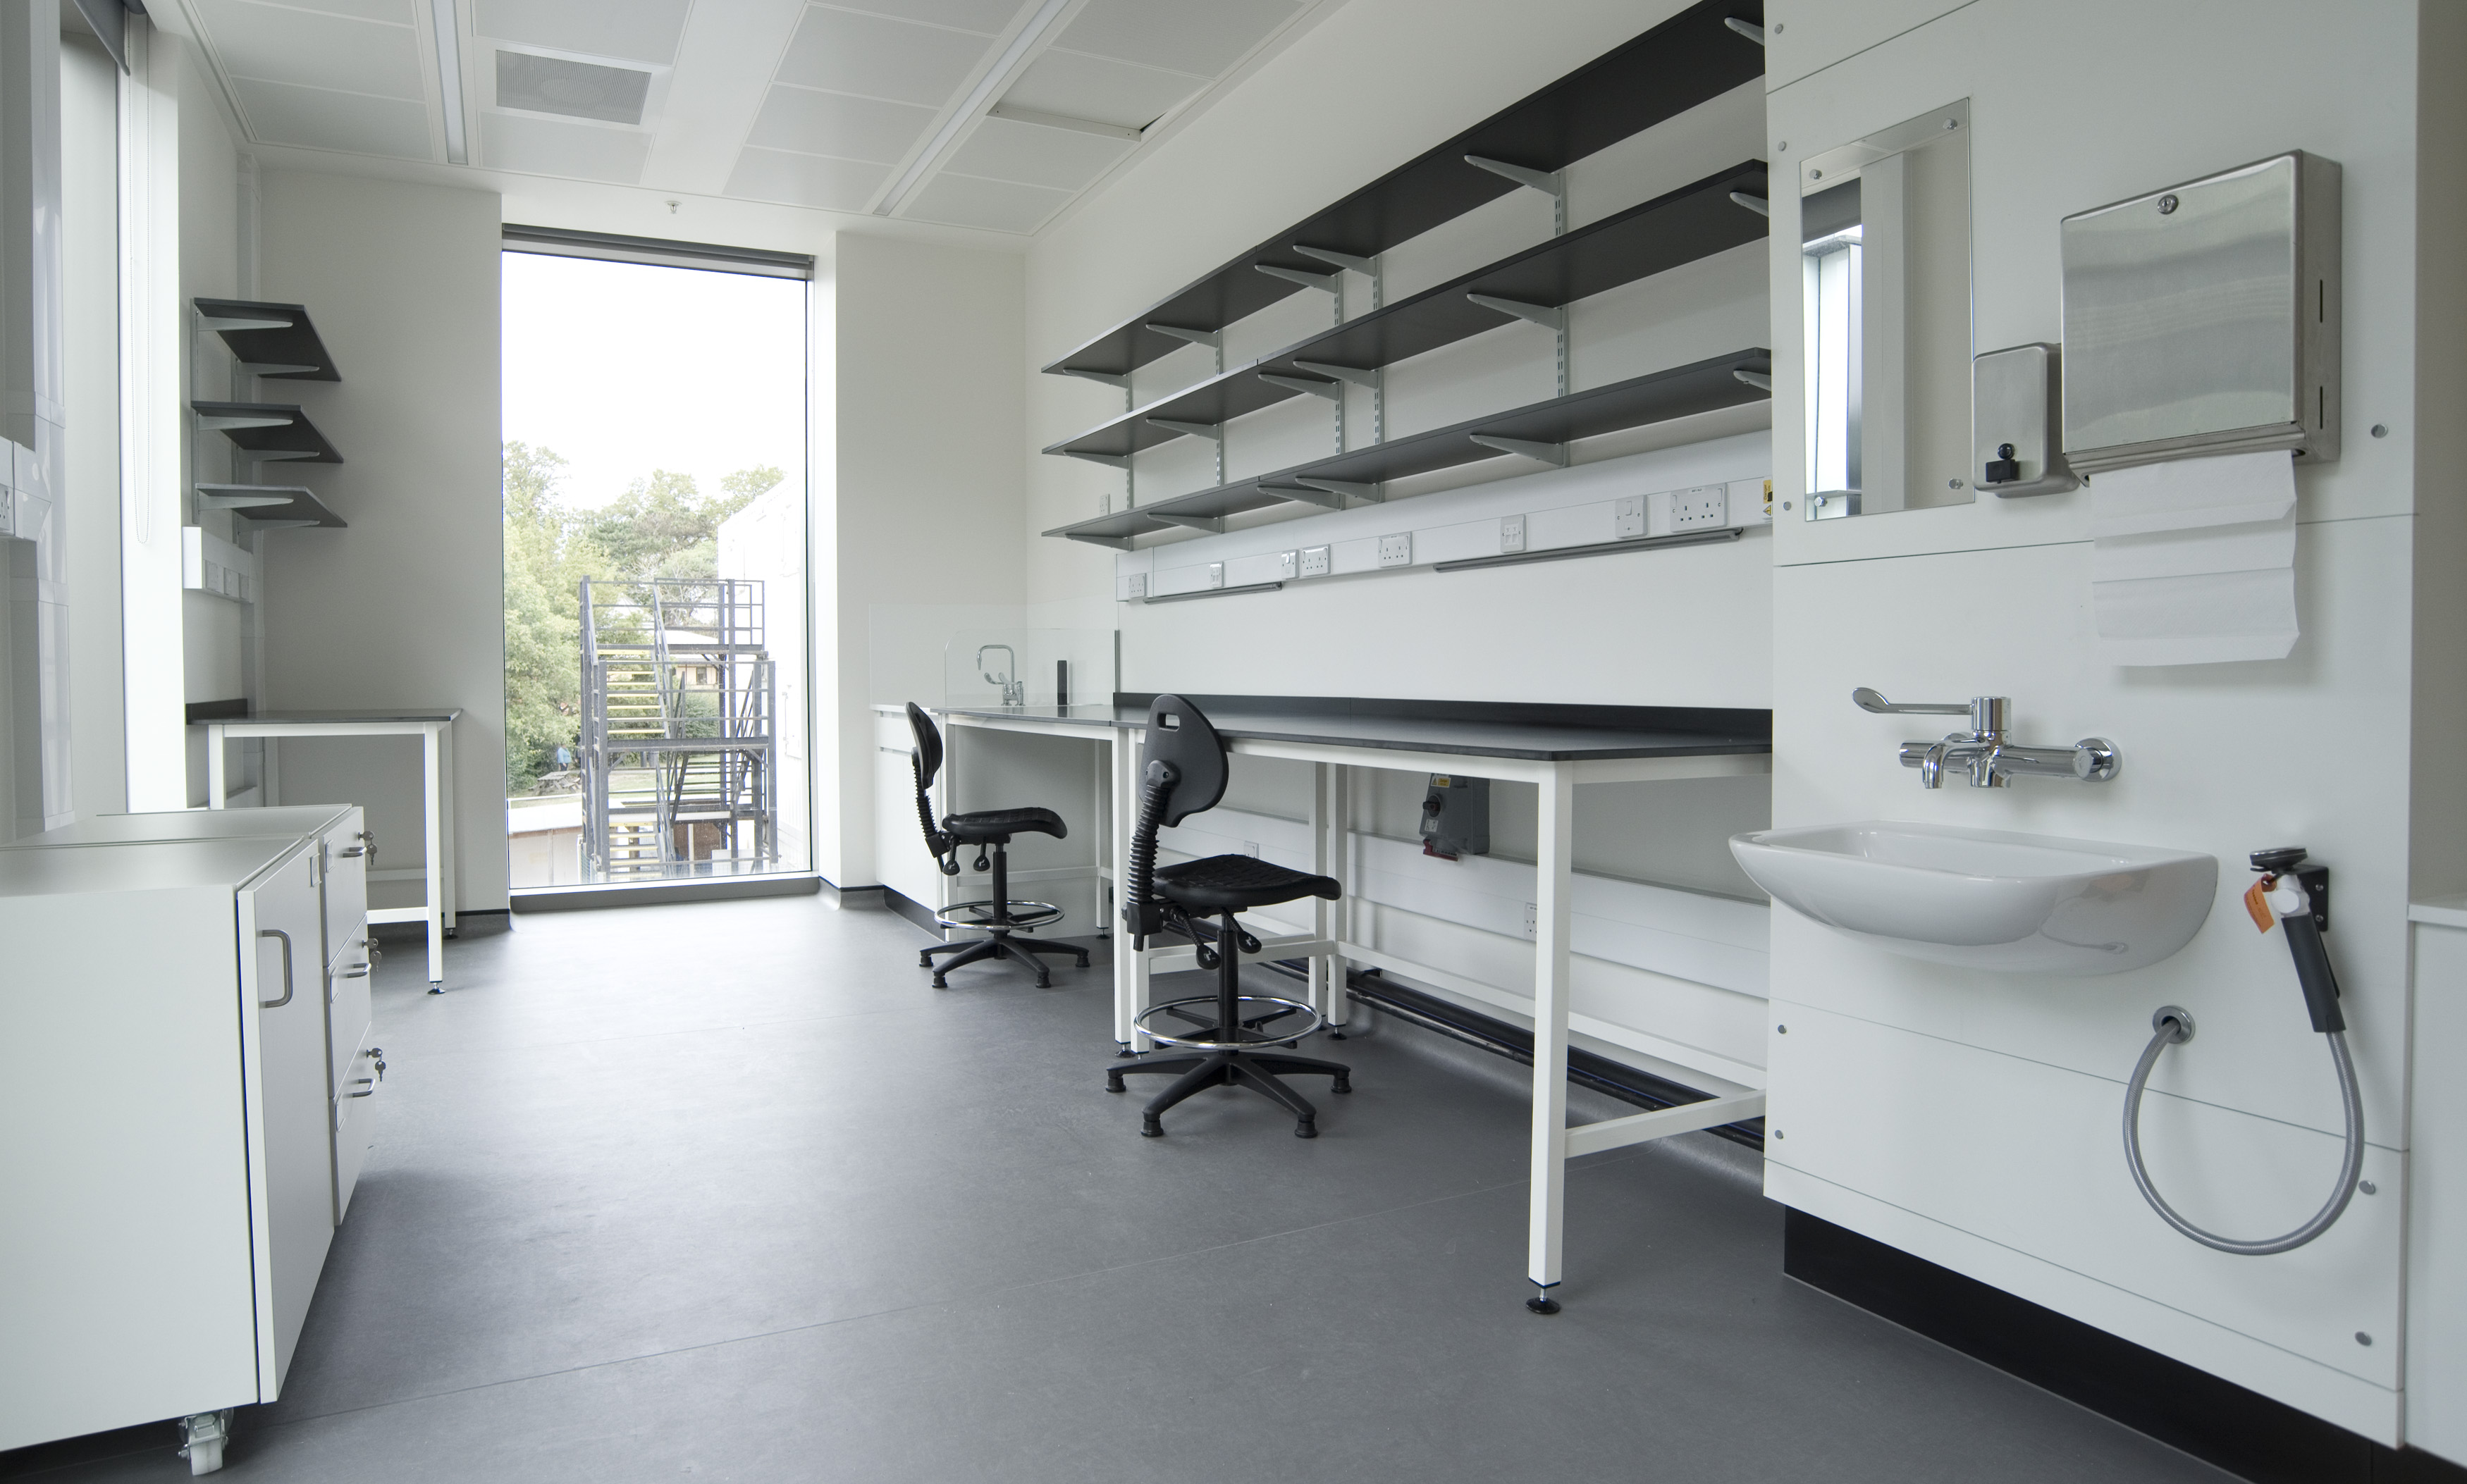 This image shows one of the smaller BioEscalator proprietary lab spaces. The room has a large window at the back. There are 3 large desks with desk chairs, 2 on the right and one on the left. There is shelving on both walls above the desks. There is also a cupboard on the left and a sink on the right wall towards the front of the room.